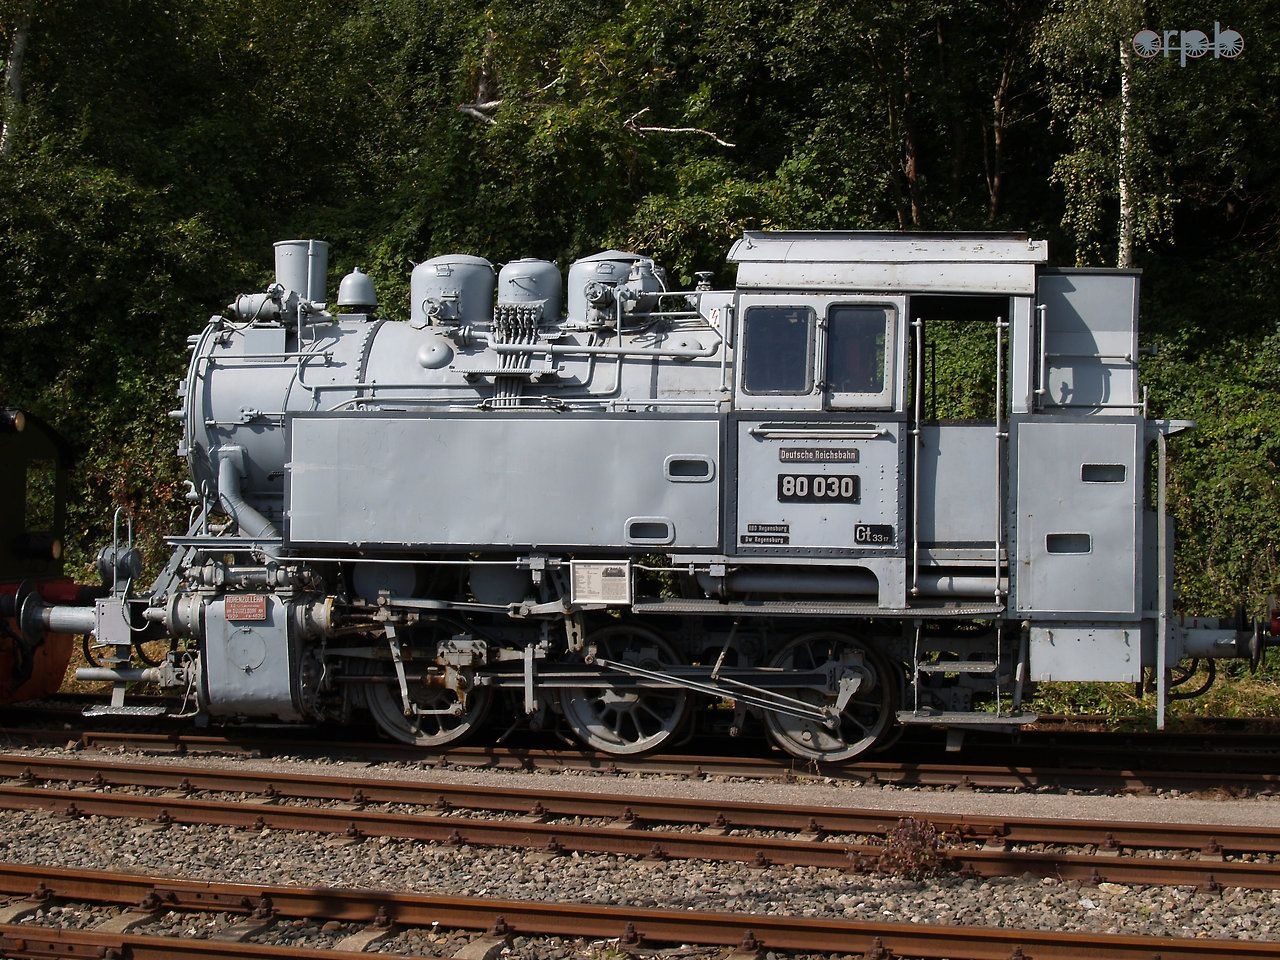 Pin by Rocketpack Man on Railroad and trains art in 2019